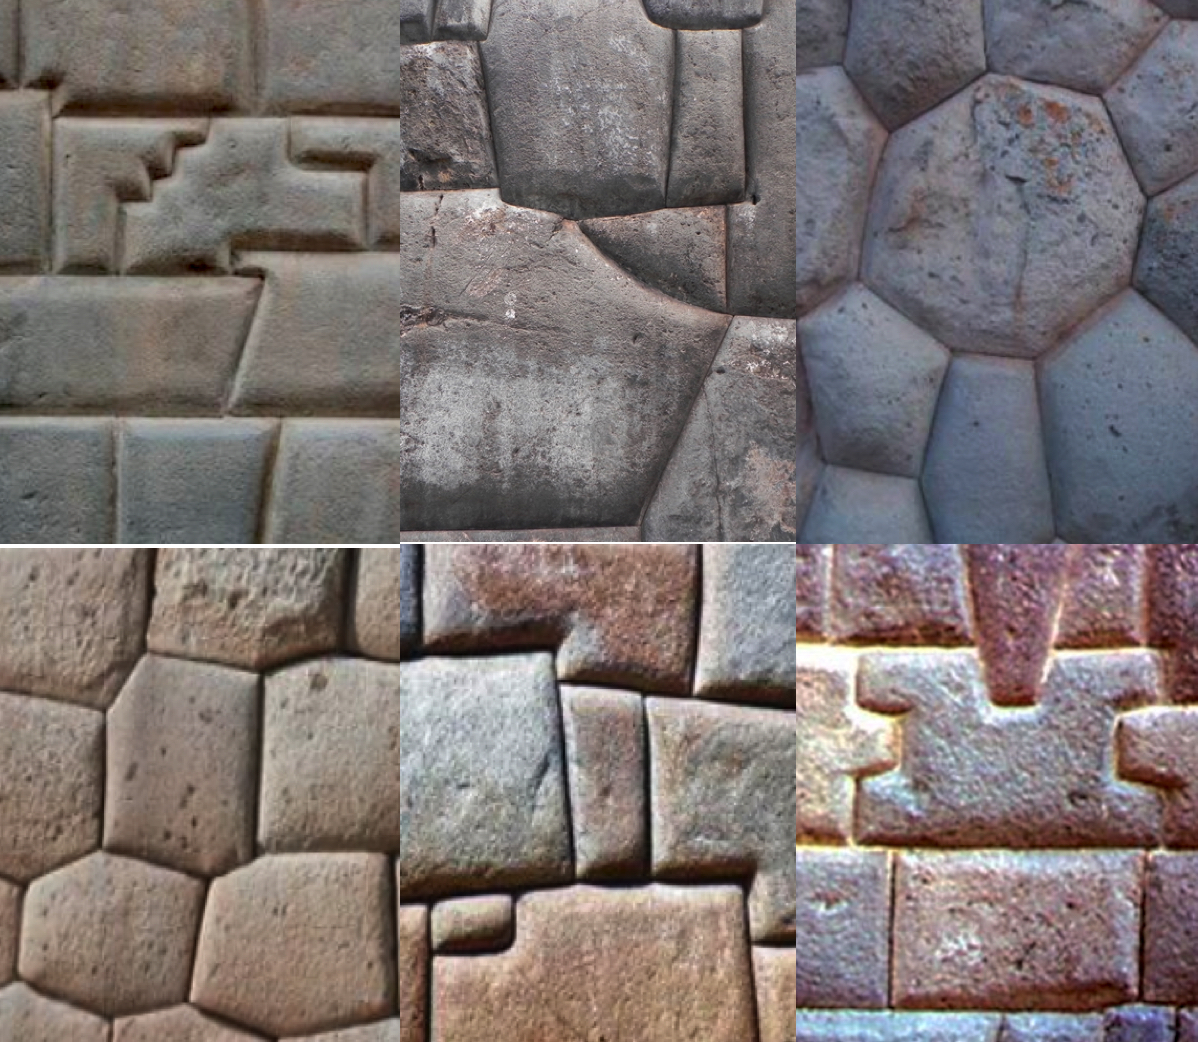 Kicked out of framing job for a while, loooong while-041c-image-peruvian-stonework.jpg